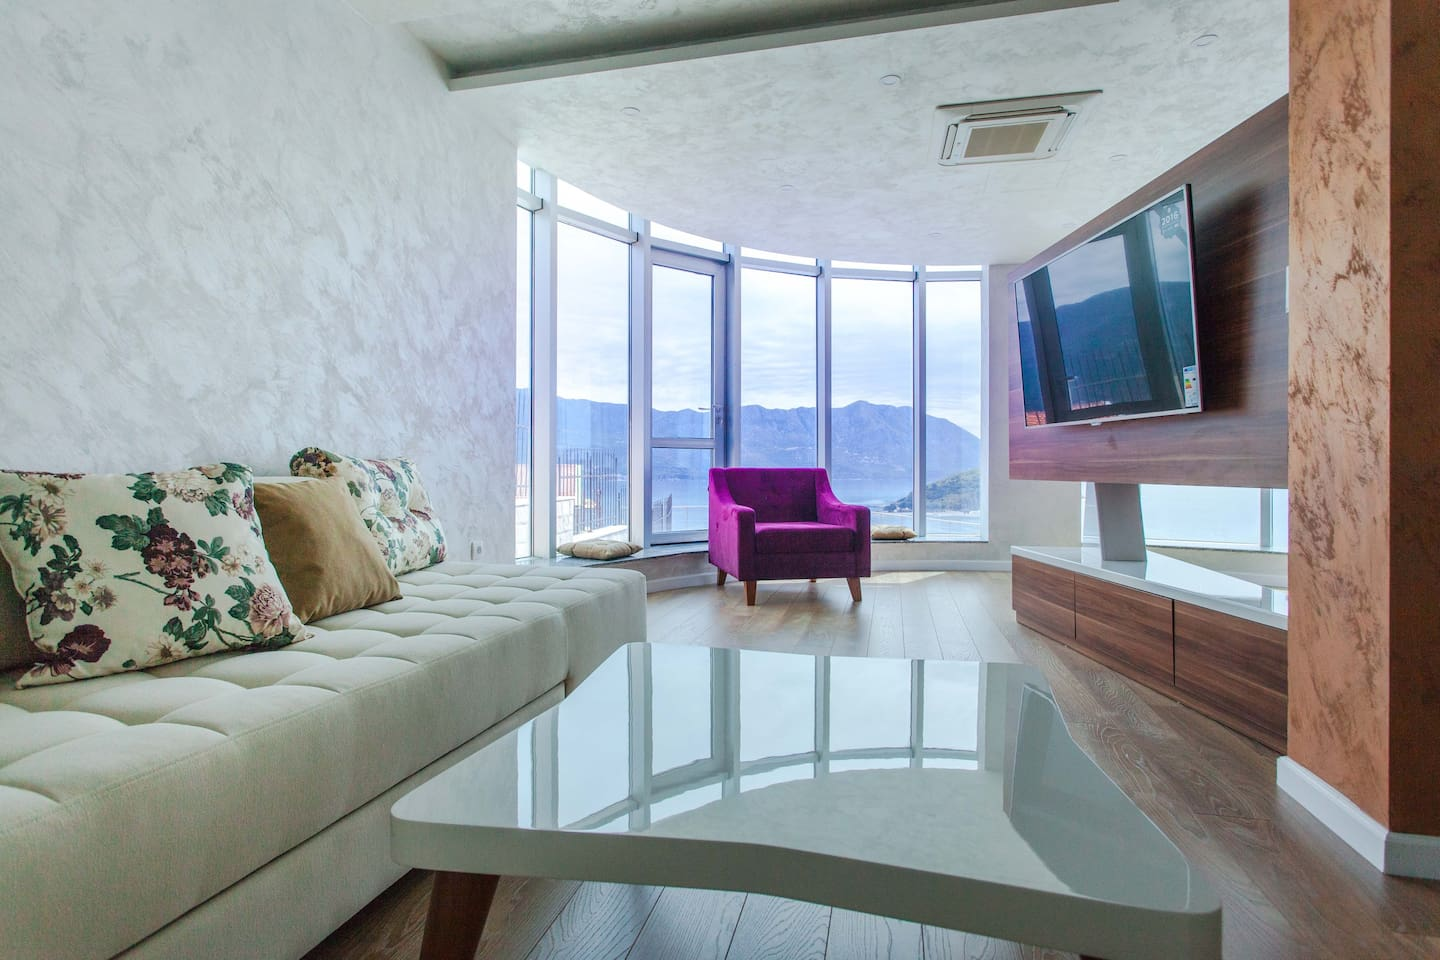 Panoramic windows and direct access to the swimming pool